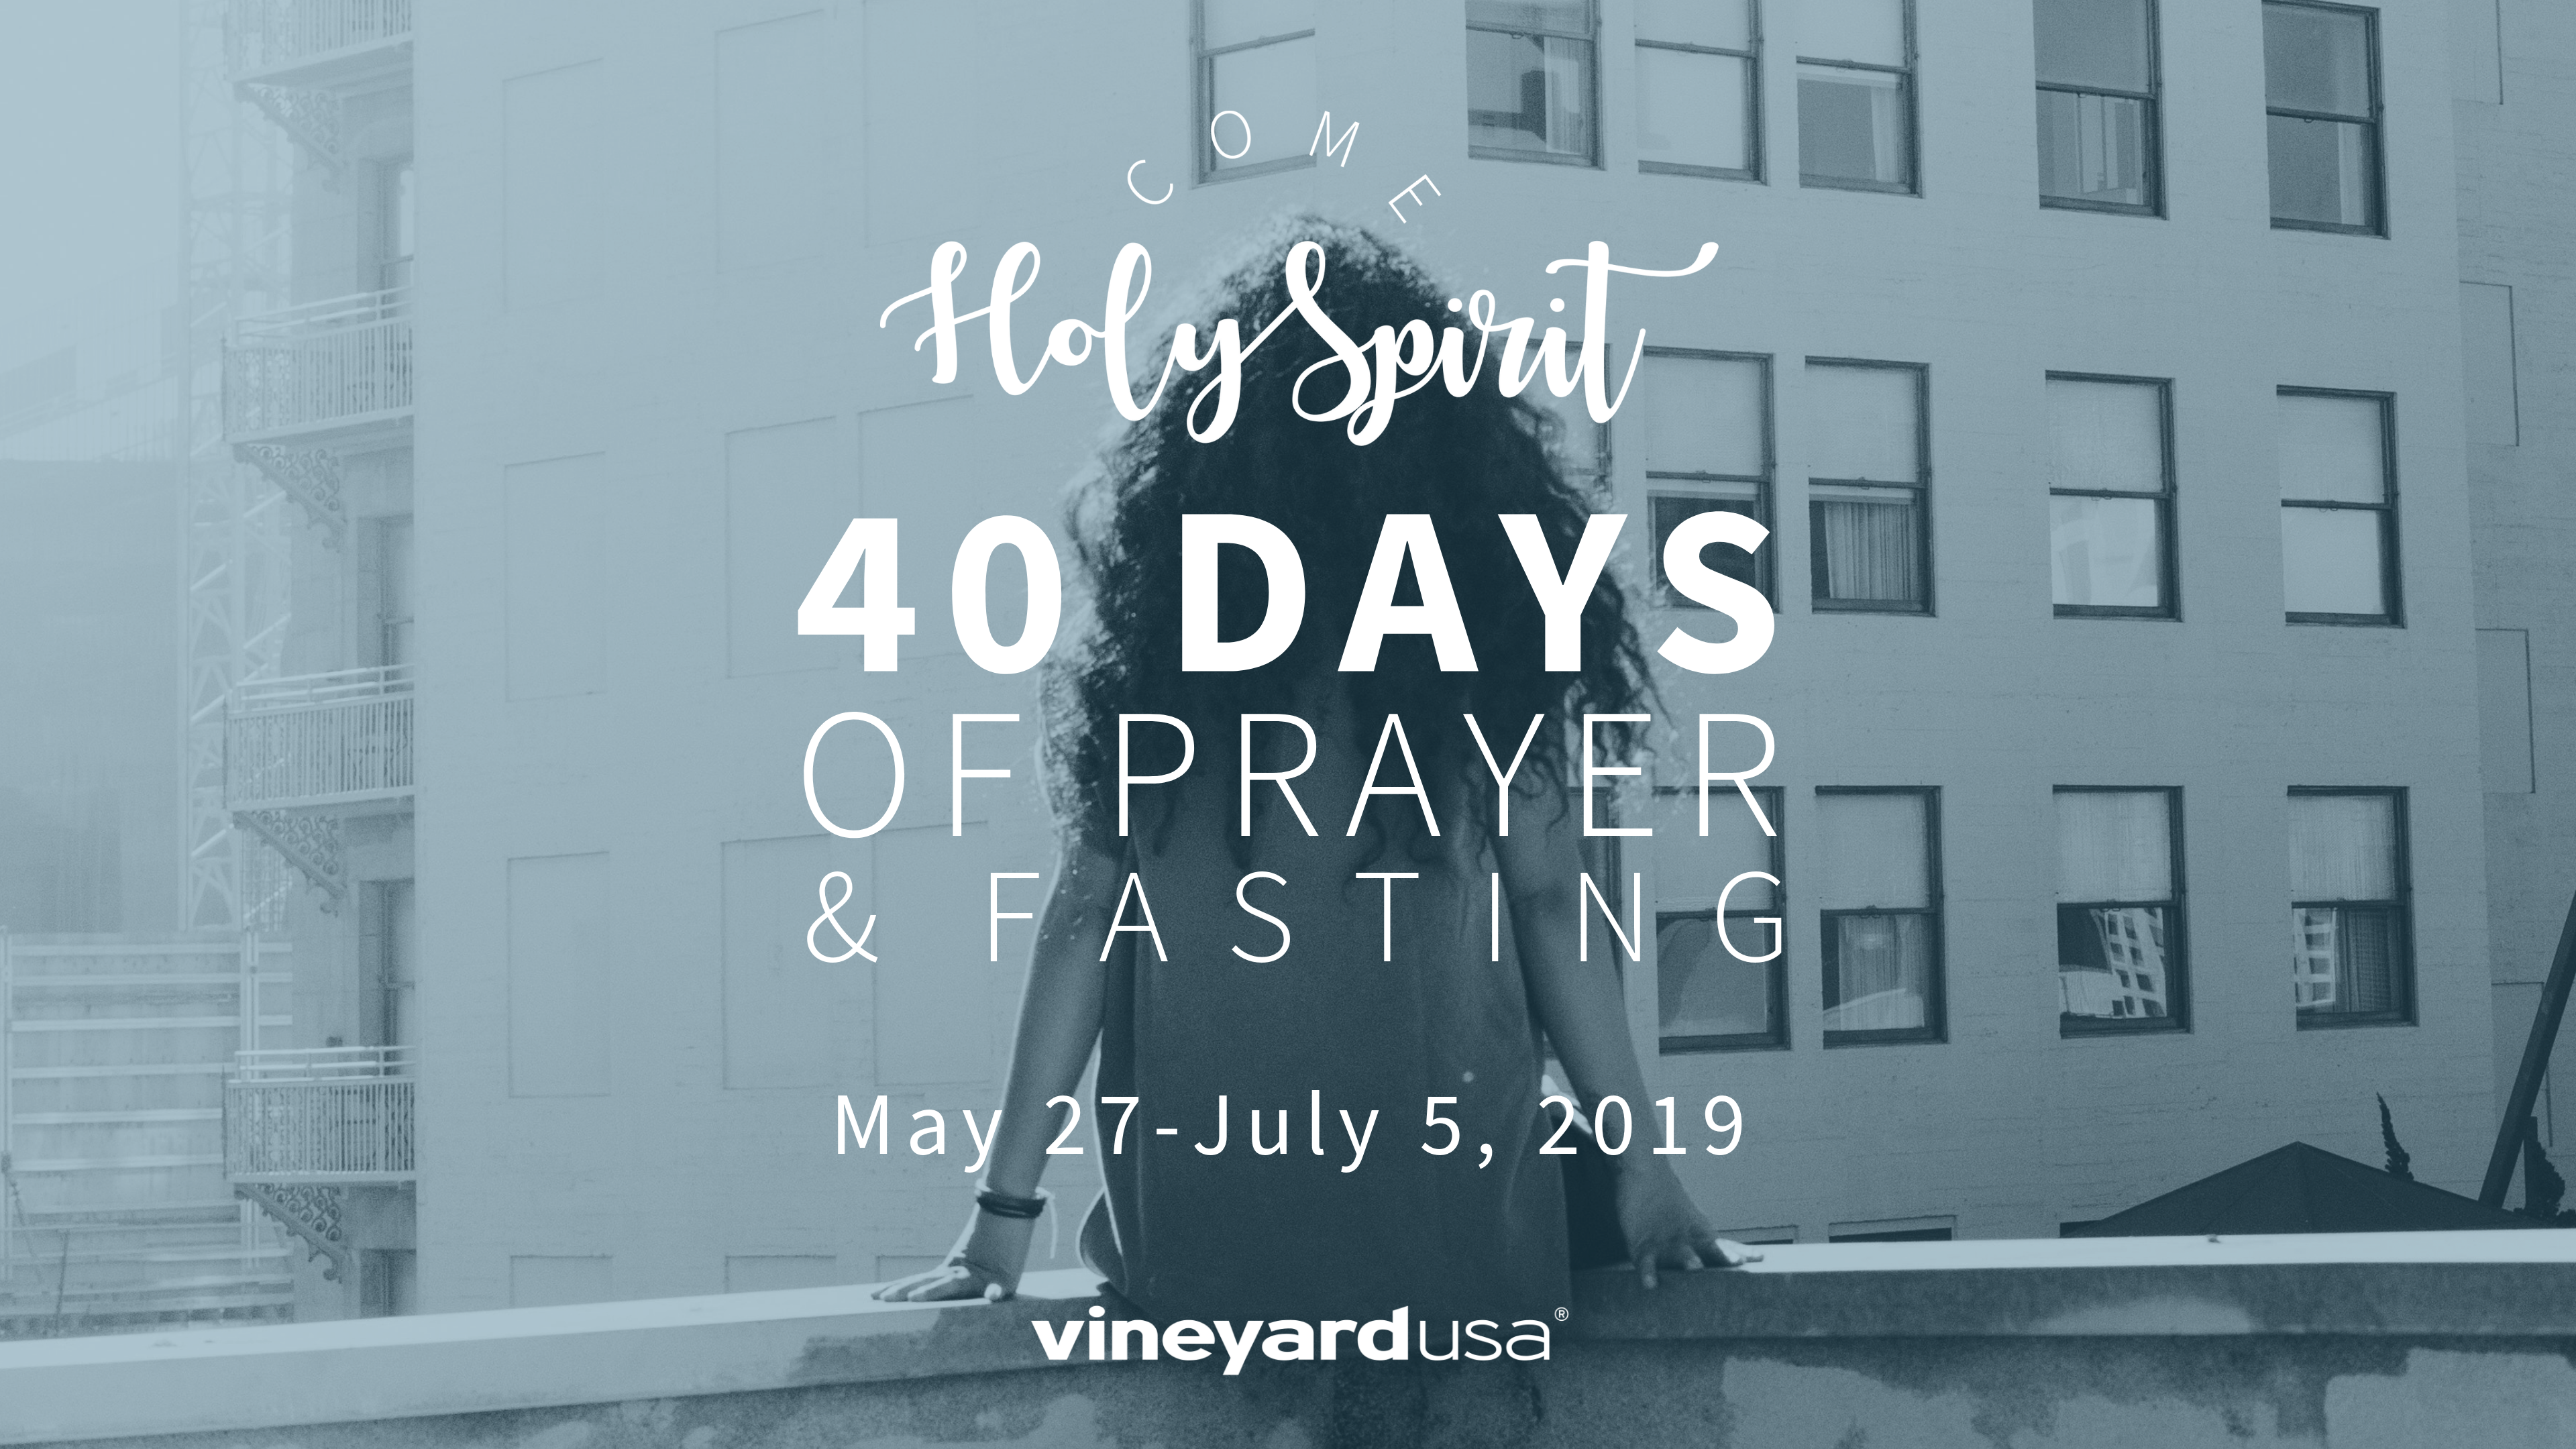 Come Holy Spirit | 40 Days Of Prayer & Fasting Participant's Guide